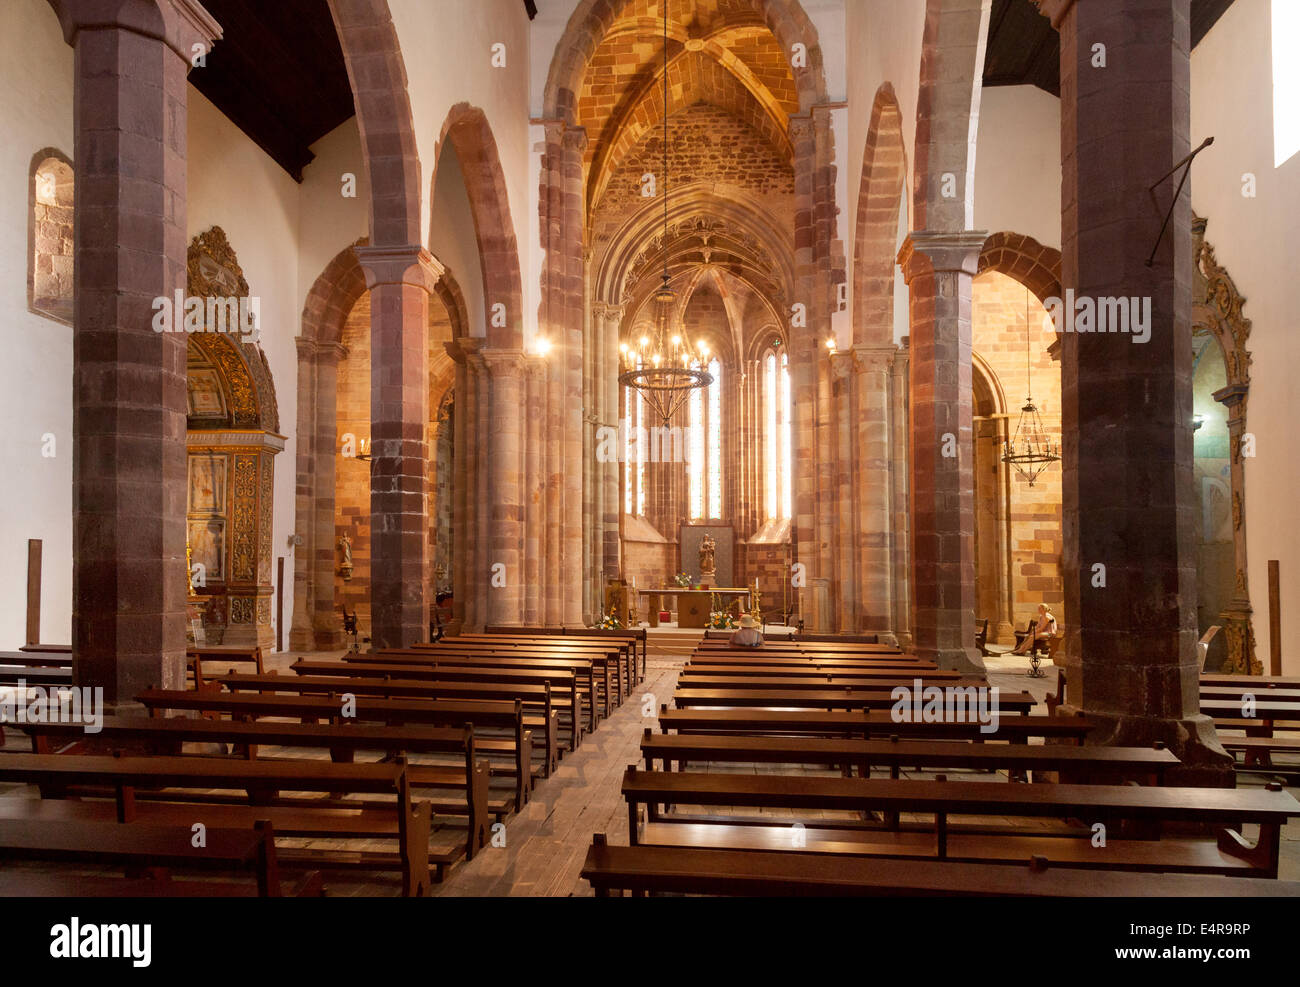 Se Catedral, Silves ( Silves Cathedral ) interior, Algarve, Portugal - Stock Image